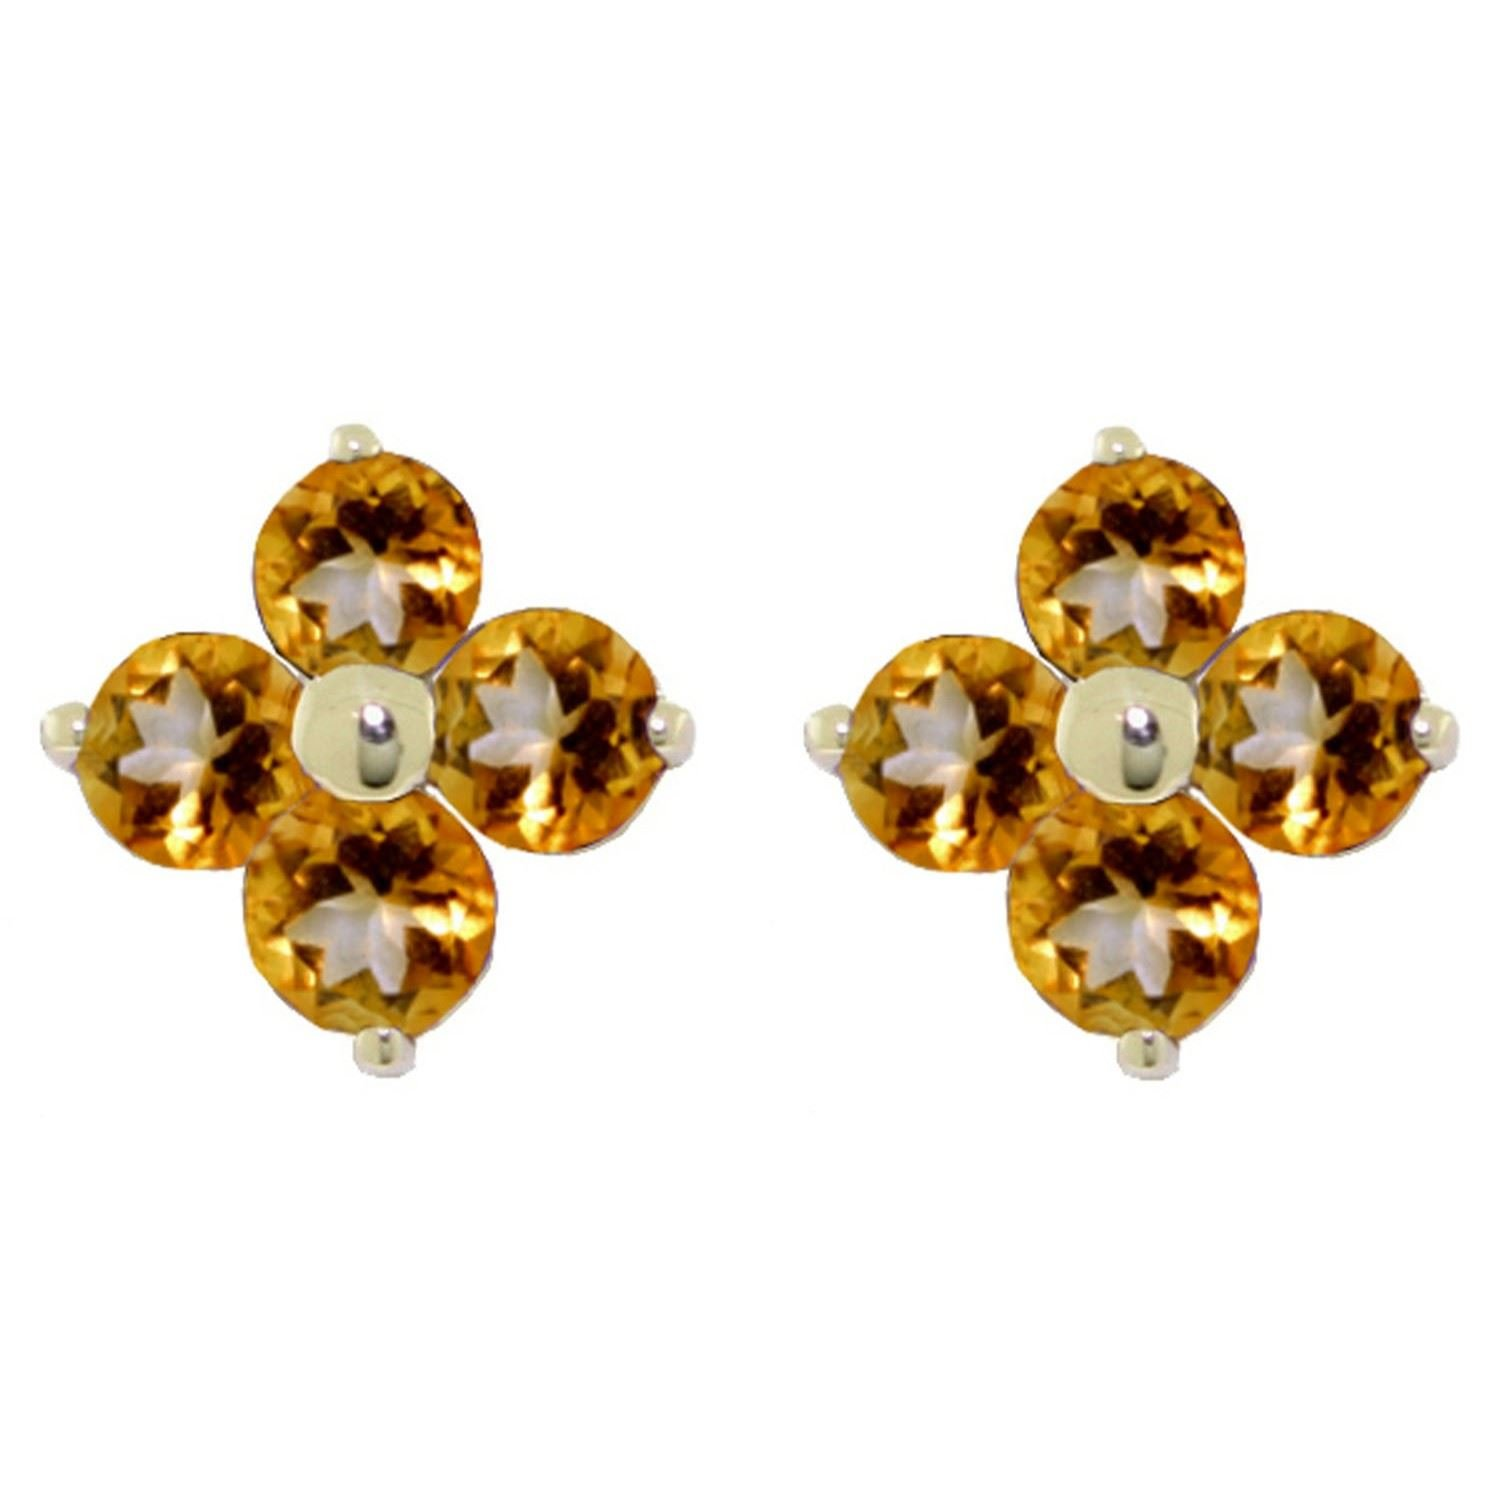 ALARRI 1.15 Carat 14K Solid Gold Trysts Of Summer Citrine Earrings